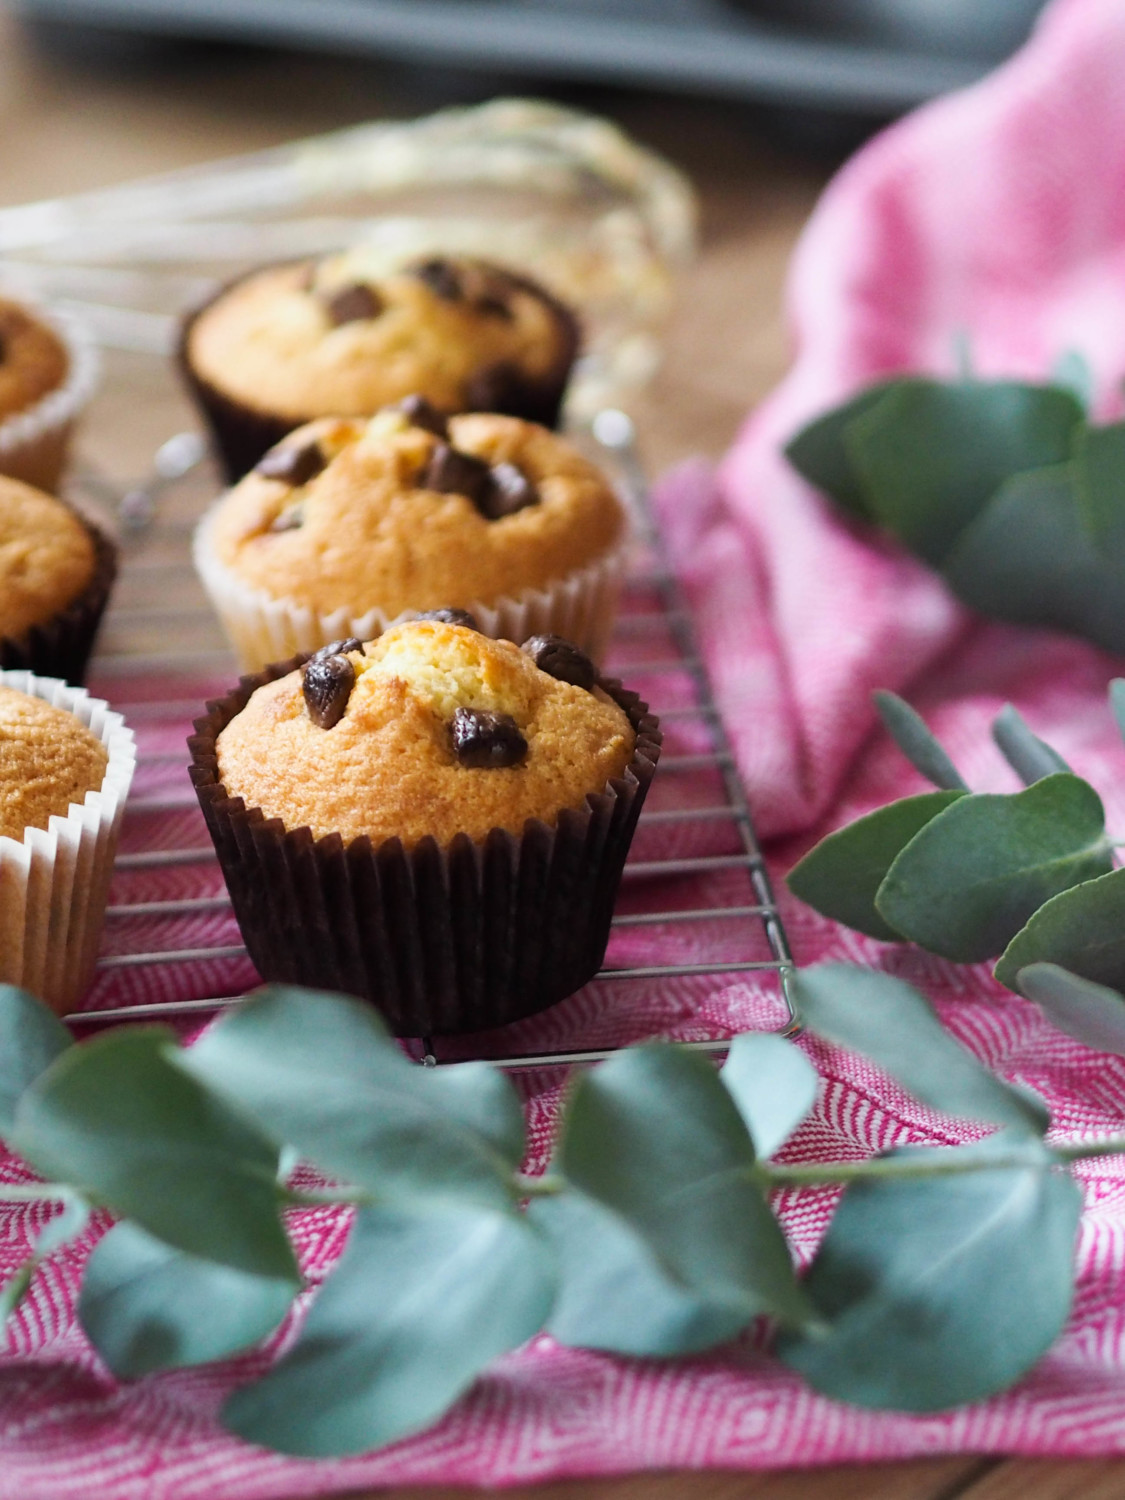 The easiest chocolate chip cupcakes recipe ever